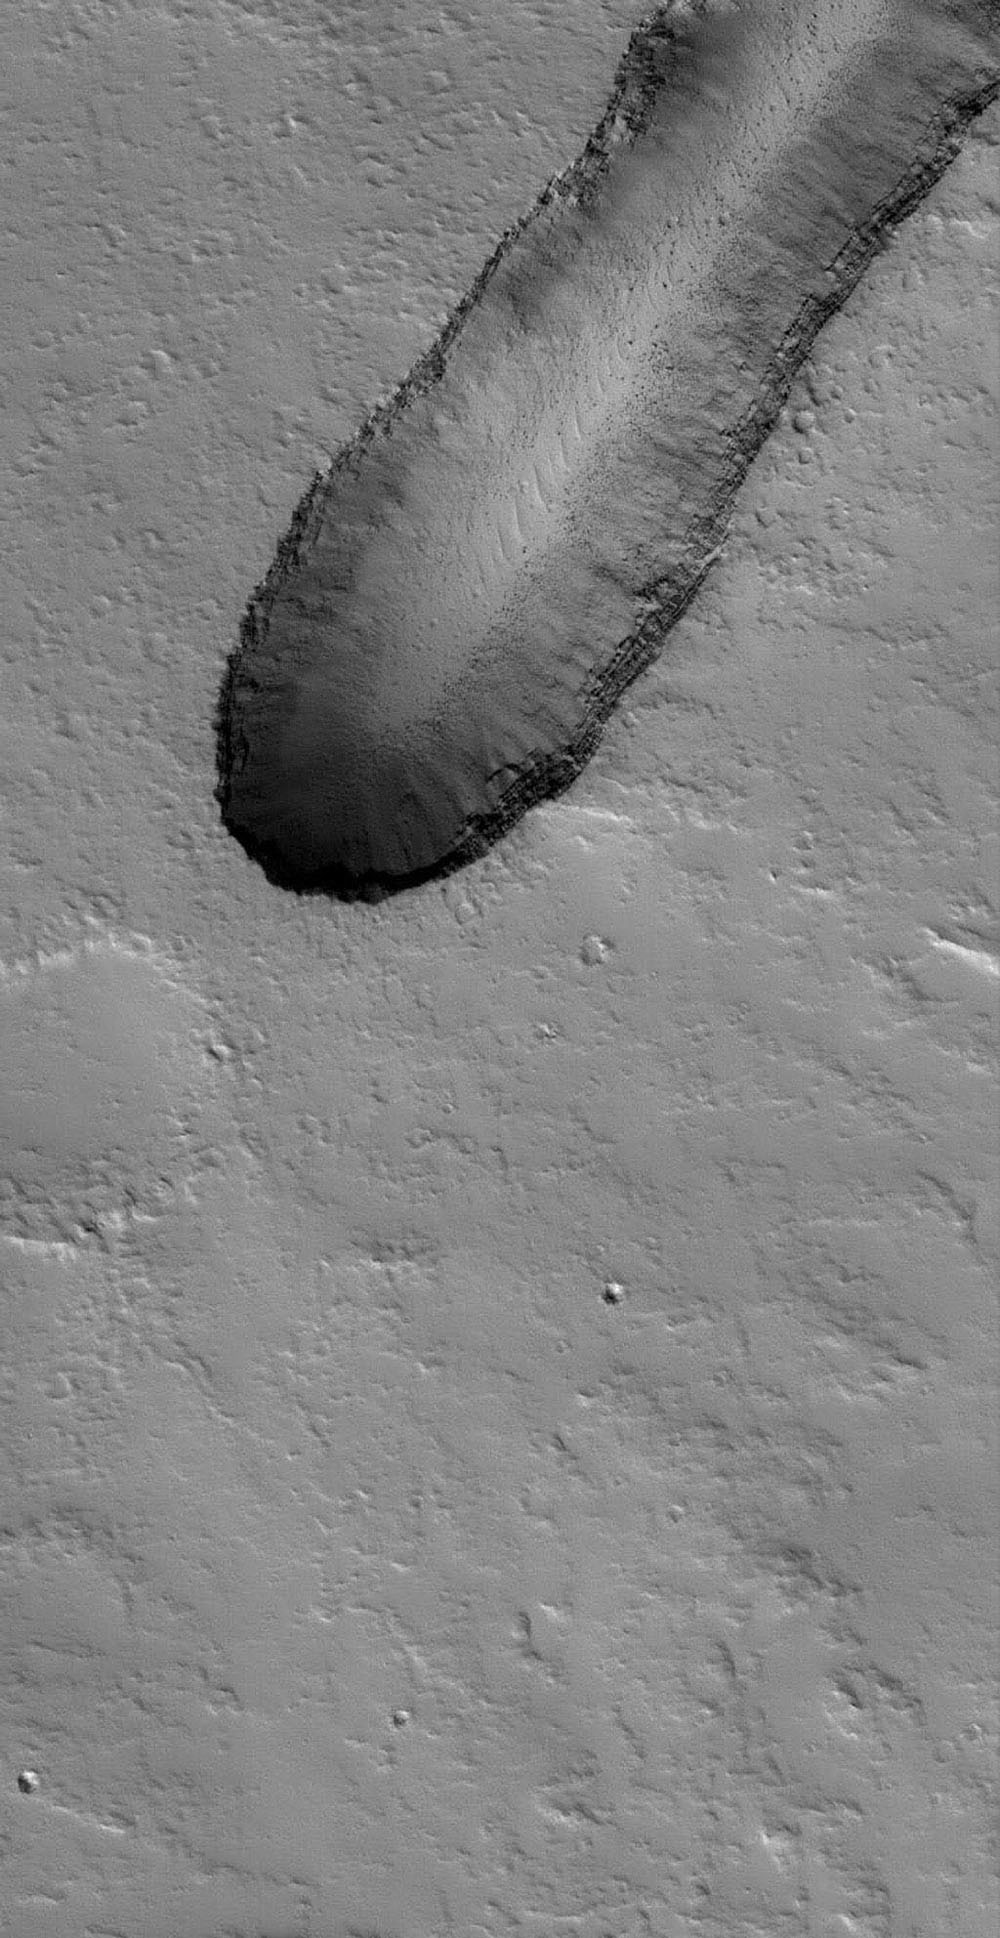 NASA's Mars Global Surveyor shows house-sized boulders and layered volcanic rock exposed in a pit on the north flank of the giant Tharsis volcano, Ascraeus Mons on Mars. The pit most likely formed by collapse.